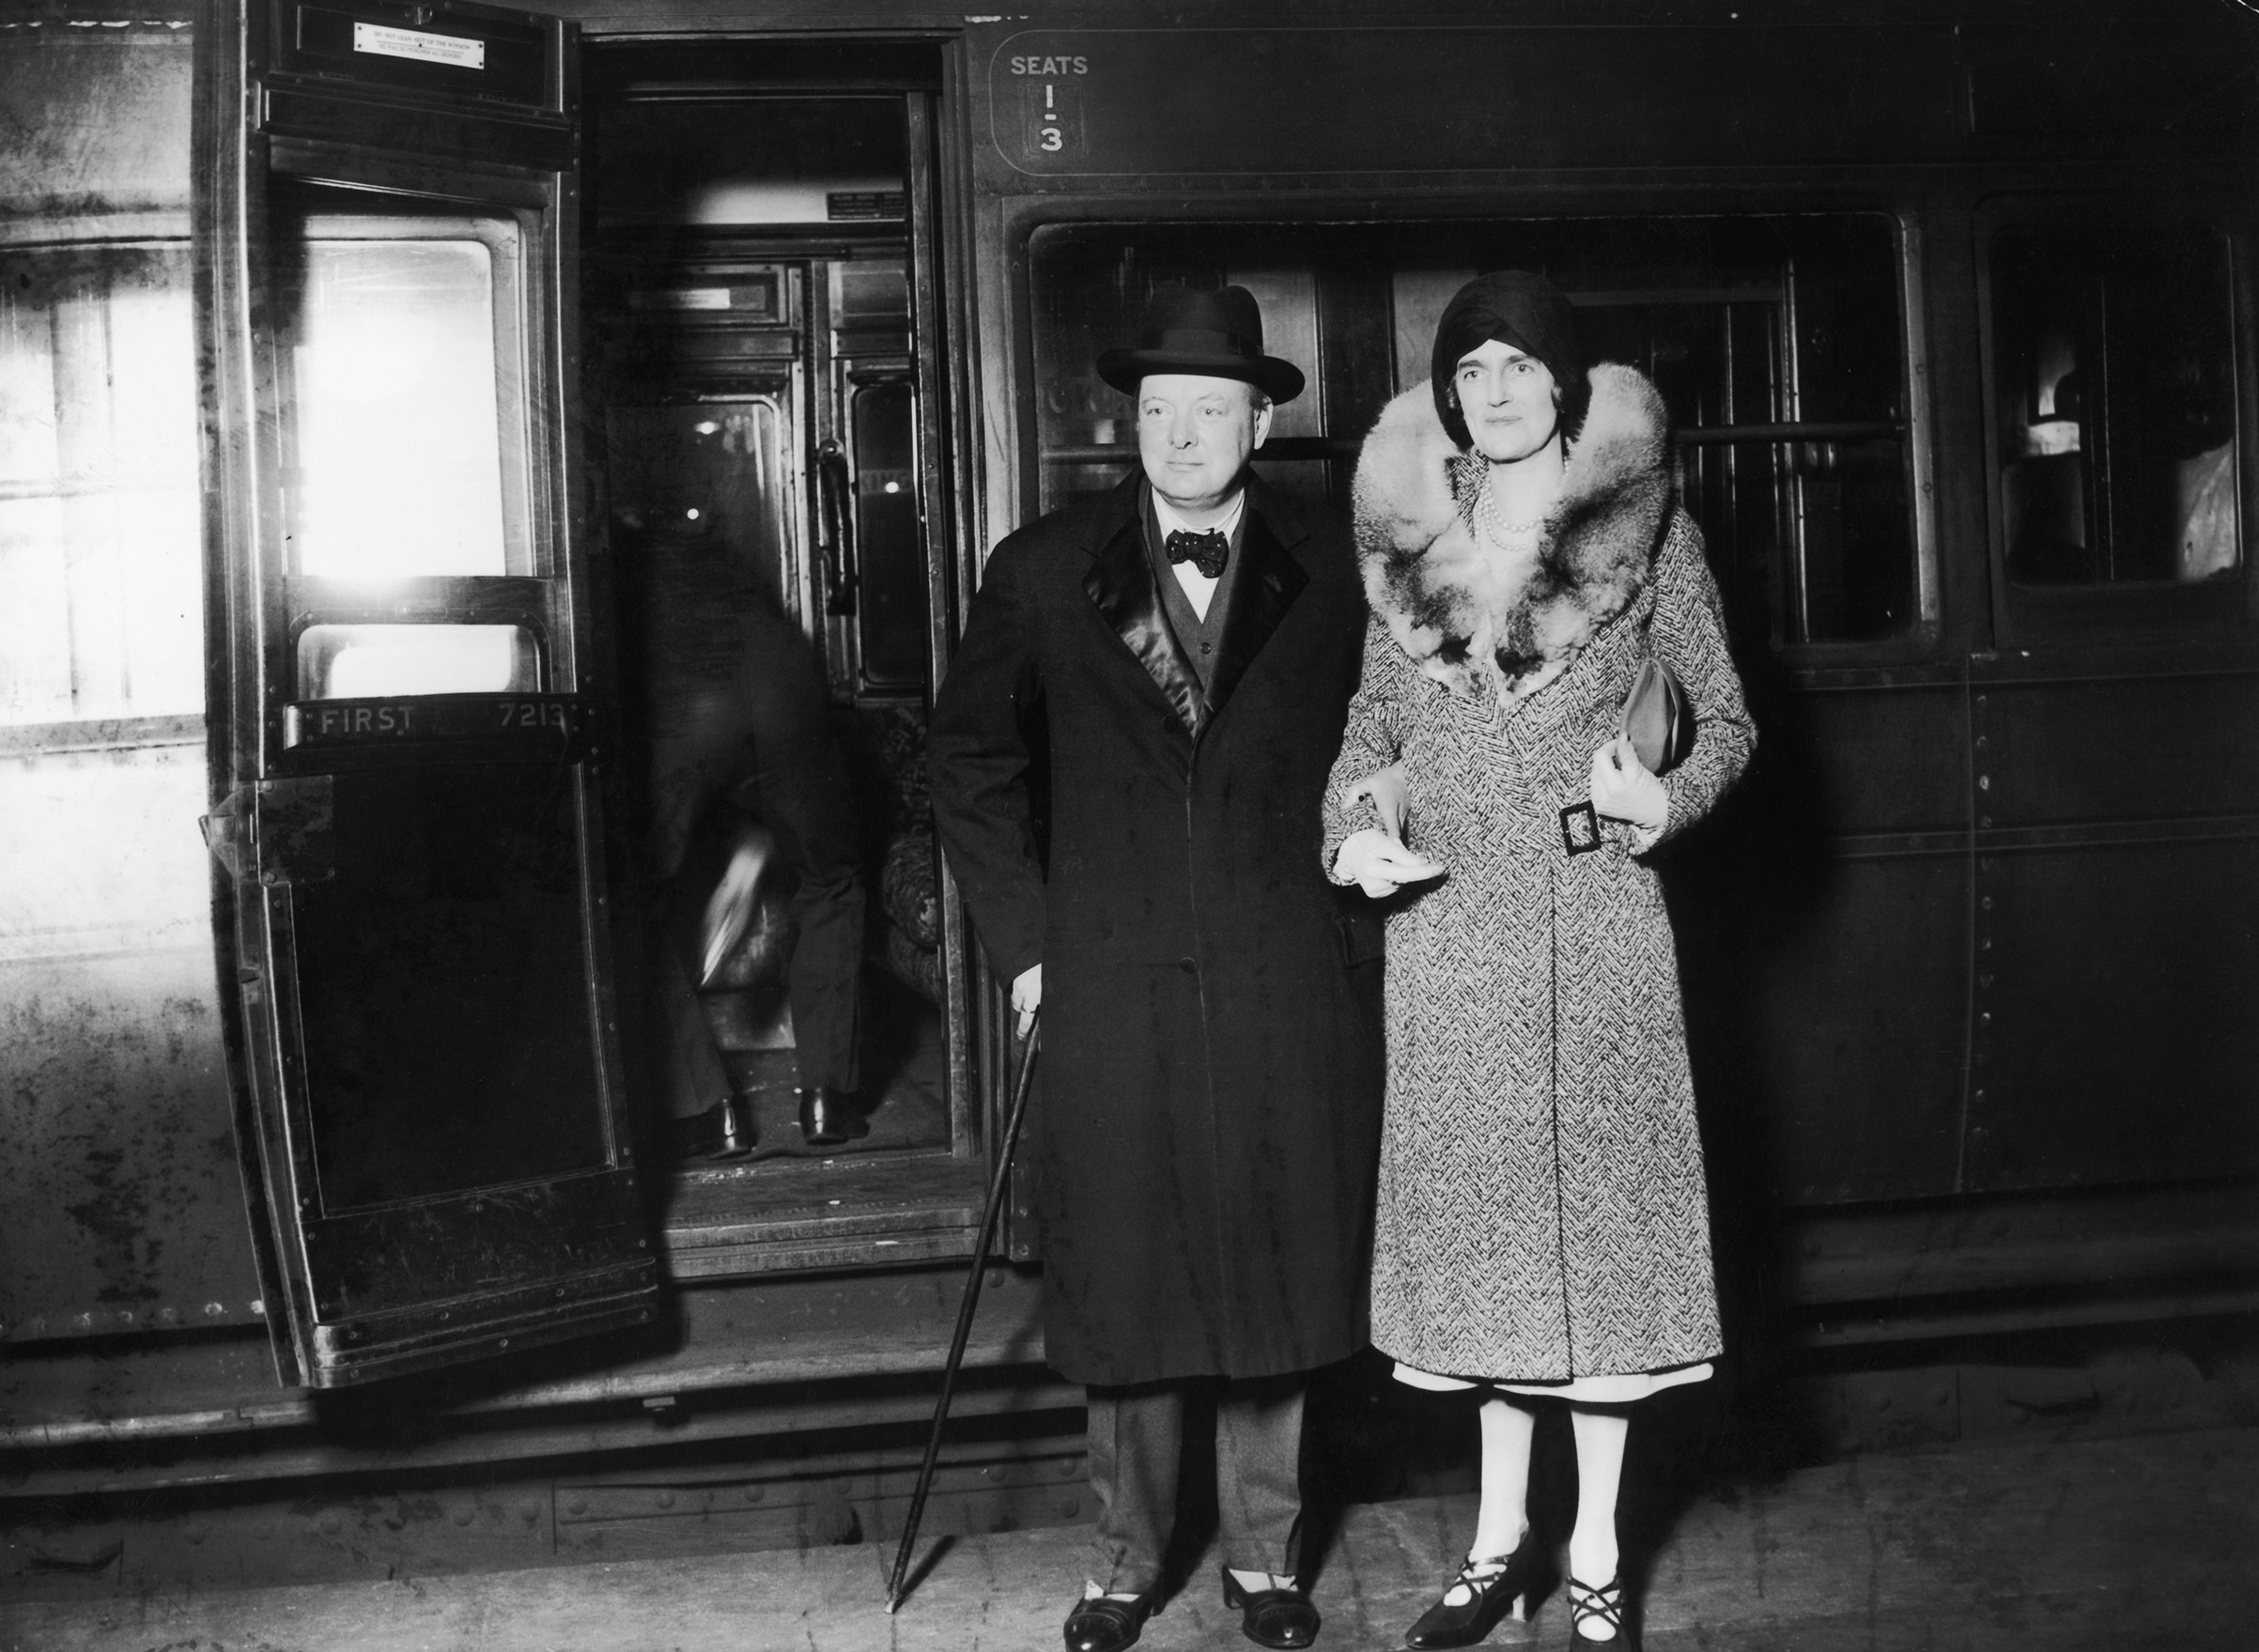 British statesman Winston Churchill and his wife Clementine arrive at Waterloo Station in London, after a visit to the United States, in Nov. 1929.